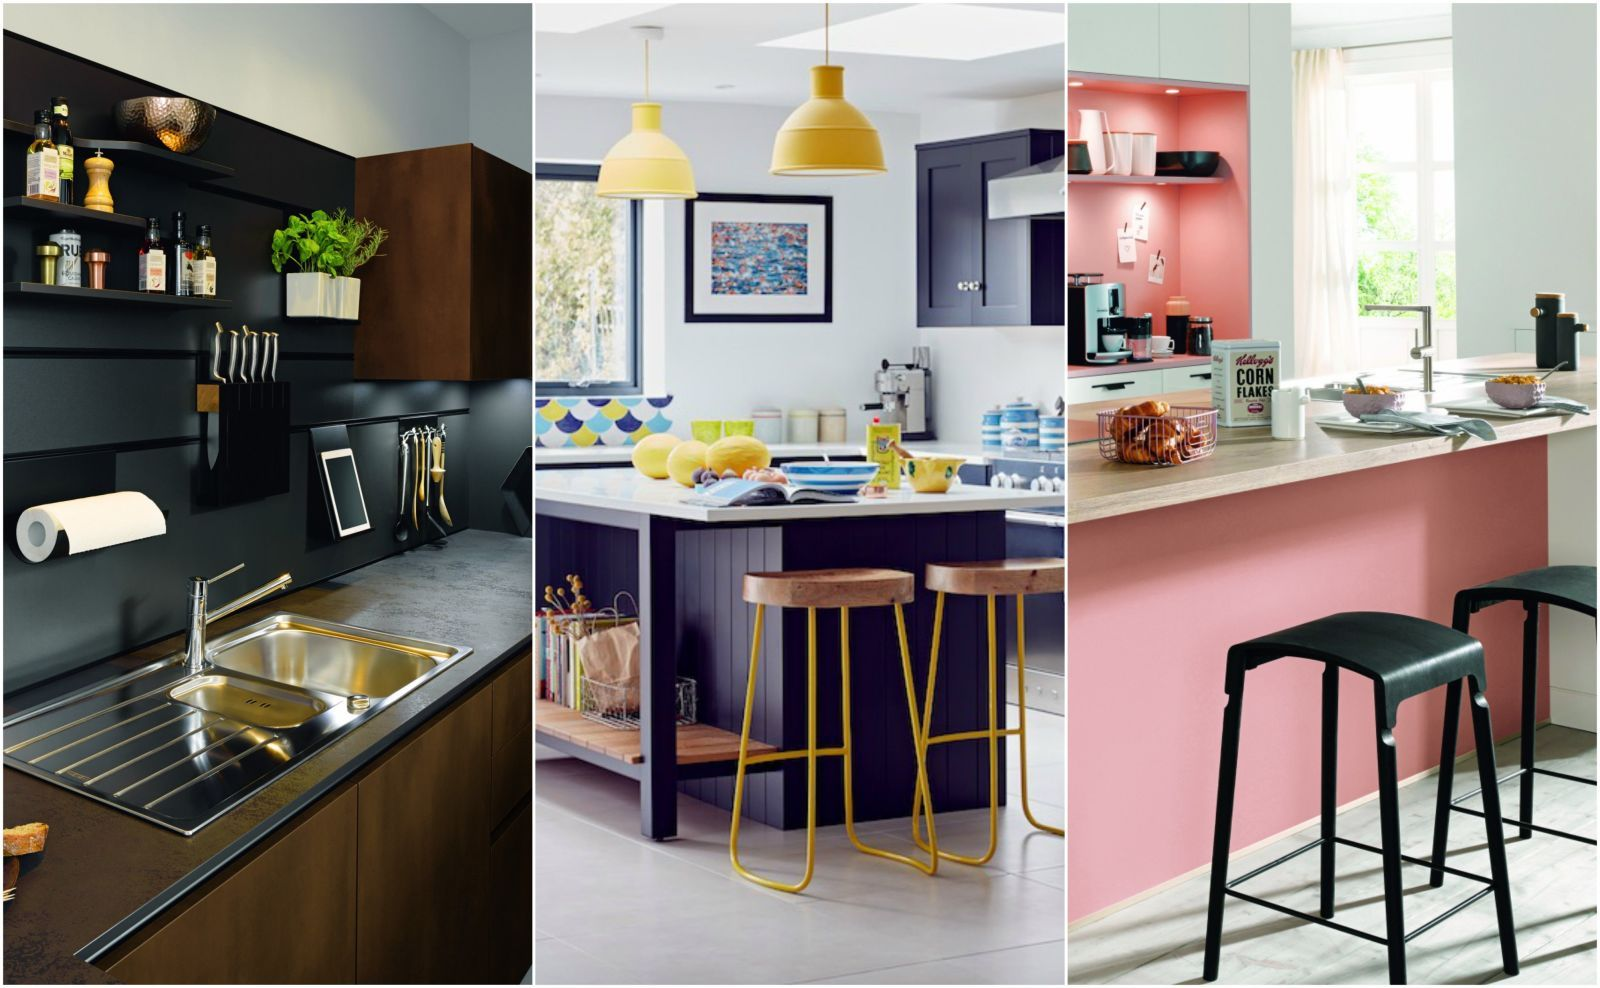 20 Kitchen Trends For 2019 You Need To Know About Brilliant Ideas